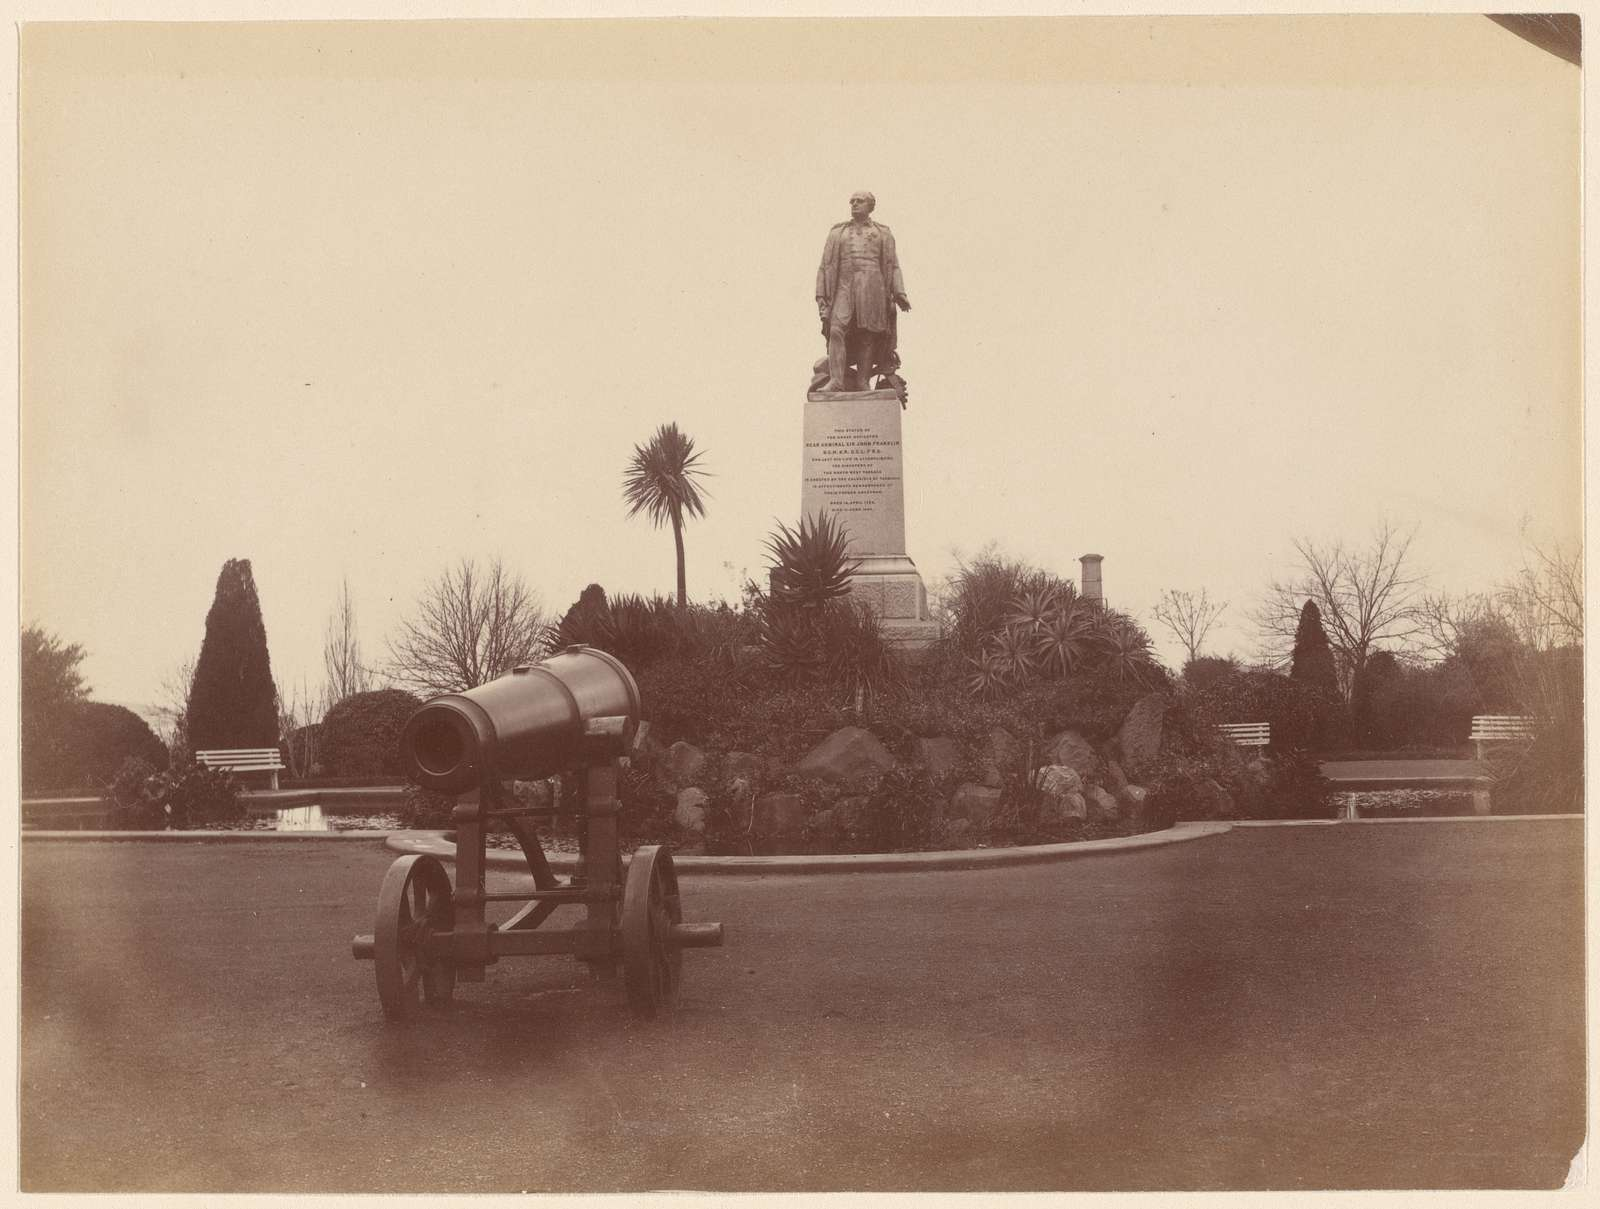 Cannon and statue